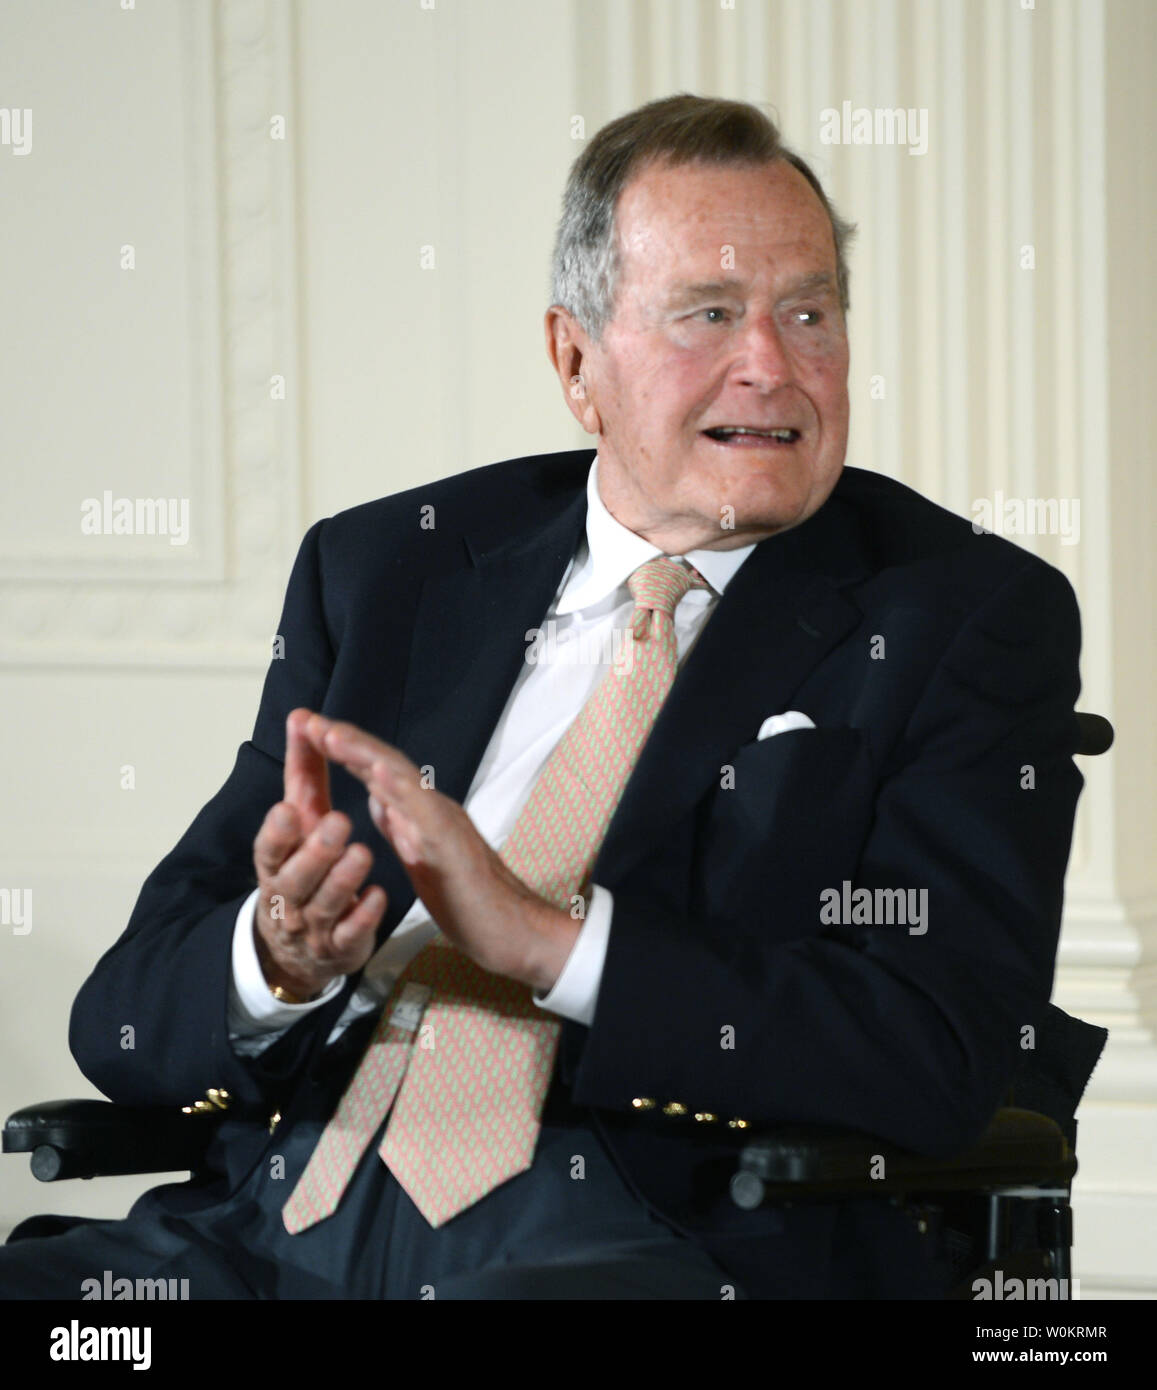 Former President George H.W. Bush applauds during the presentation of the 5,000th 'Points of Light' Foundation award with President Barack Obama in the East Room of the White House in Washington, DC on July 15, 2013.  Bush started the national movement to advance volunteerism and community service 20 years ago when he was the 41st president.  Kathy Hamilton and Floyd Hammer won the award.   UPI/Pat Benic - Stock Image